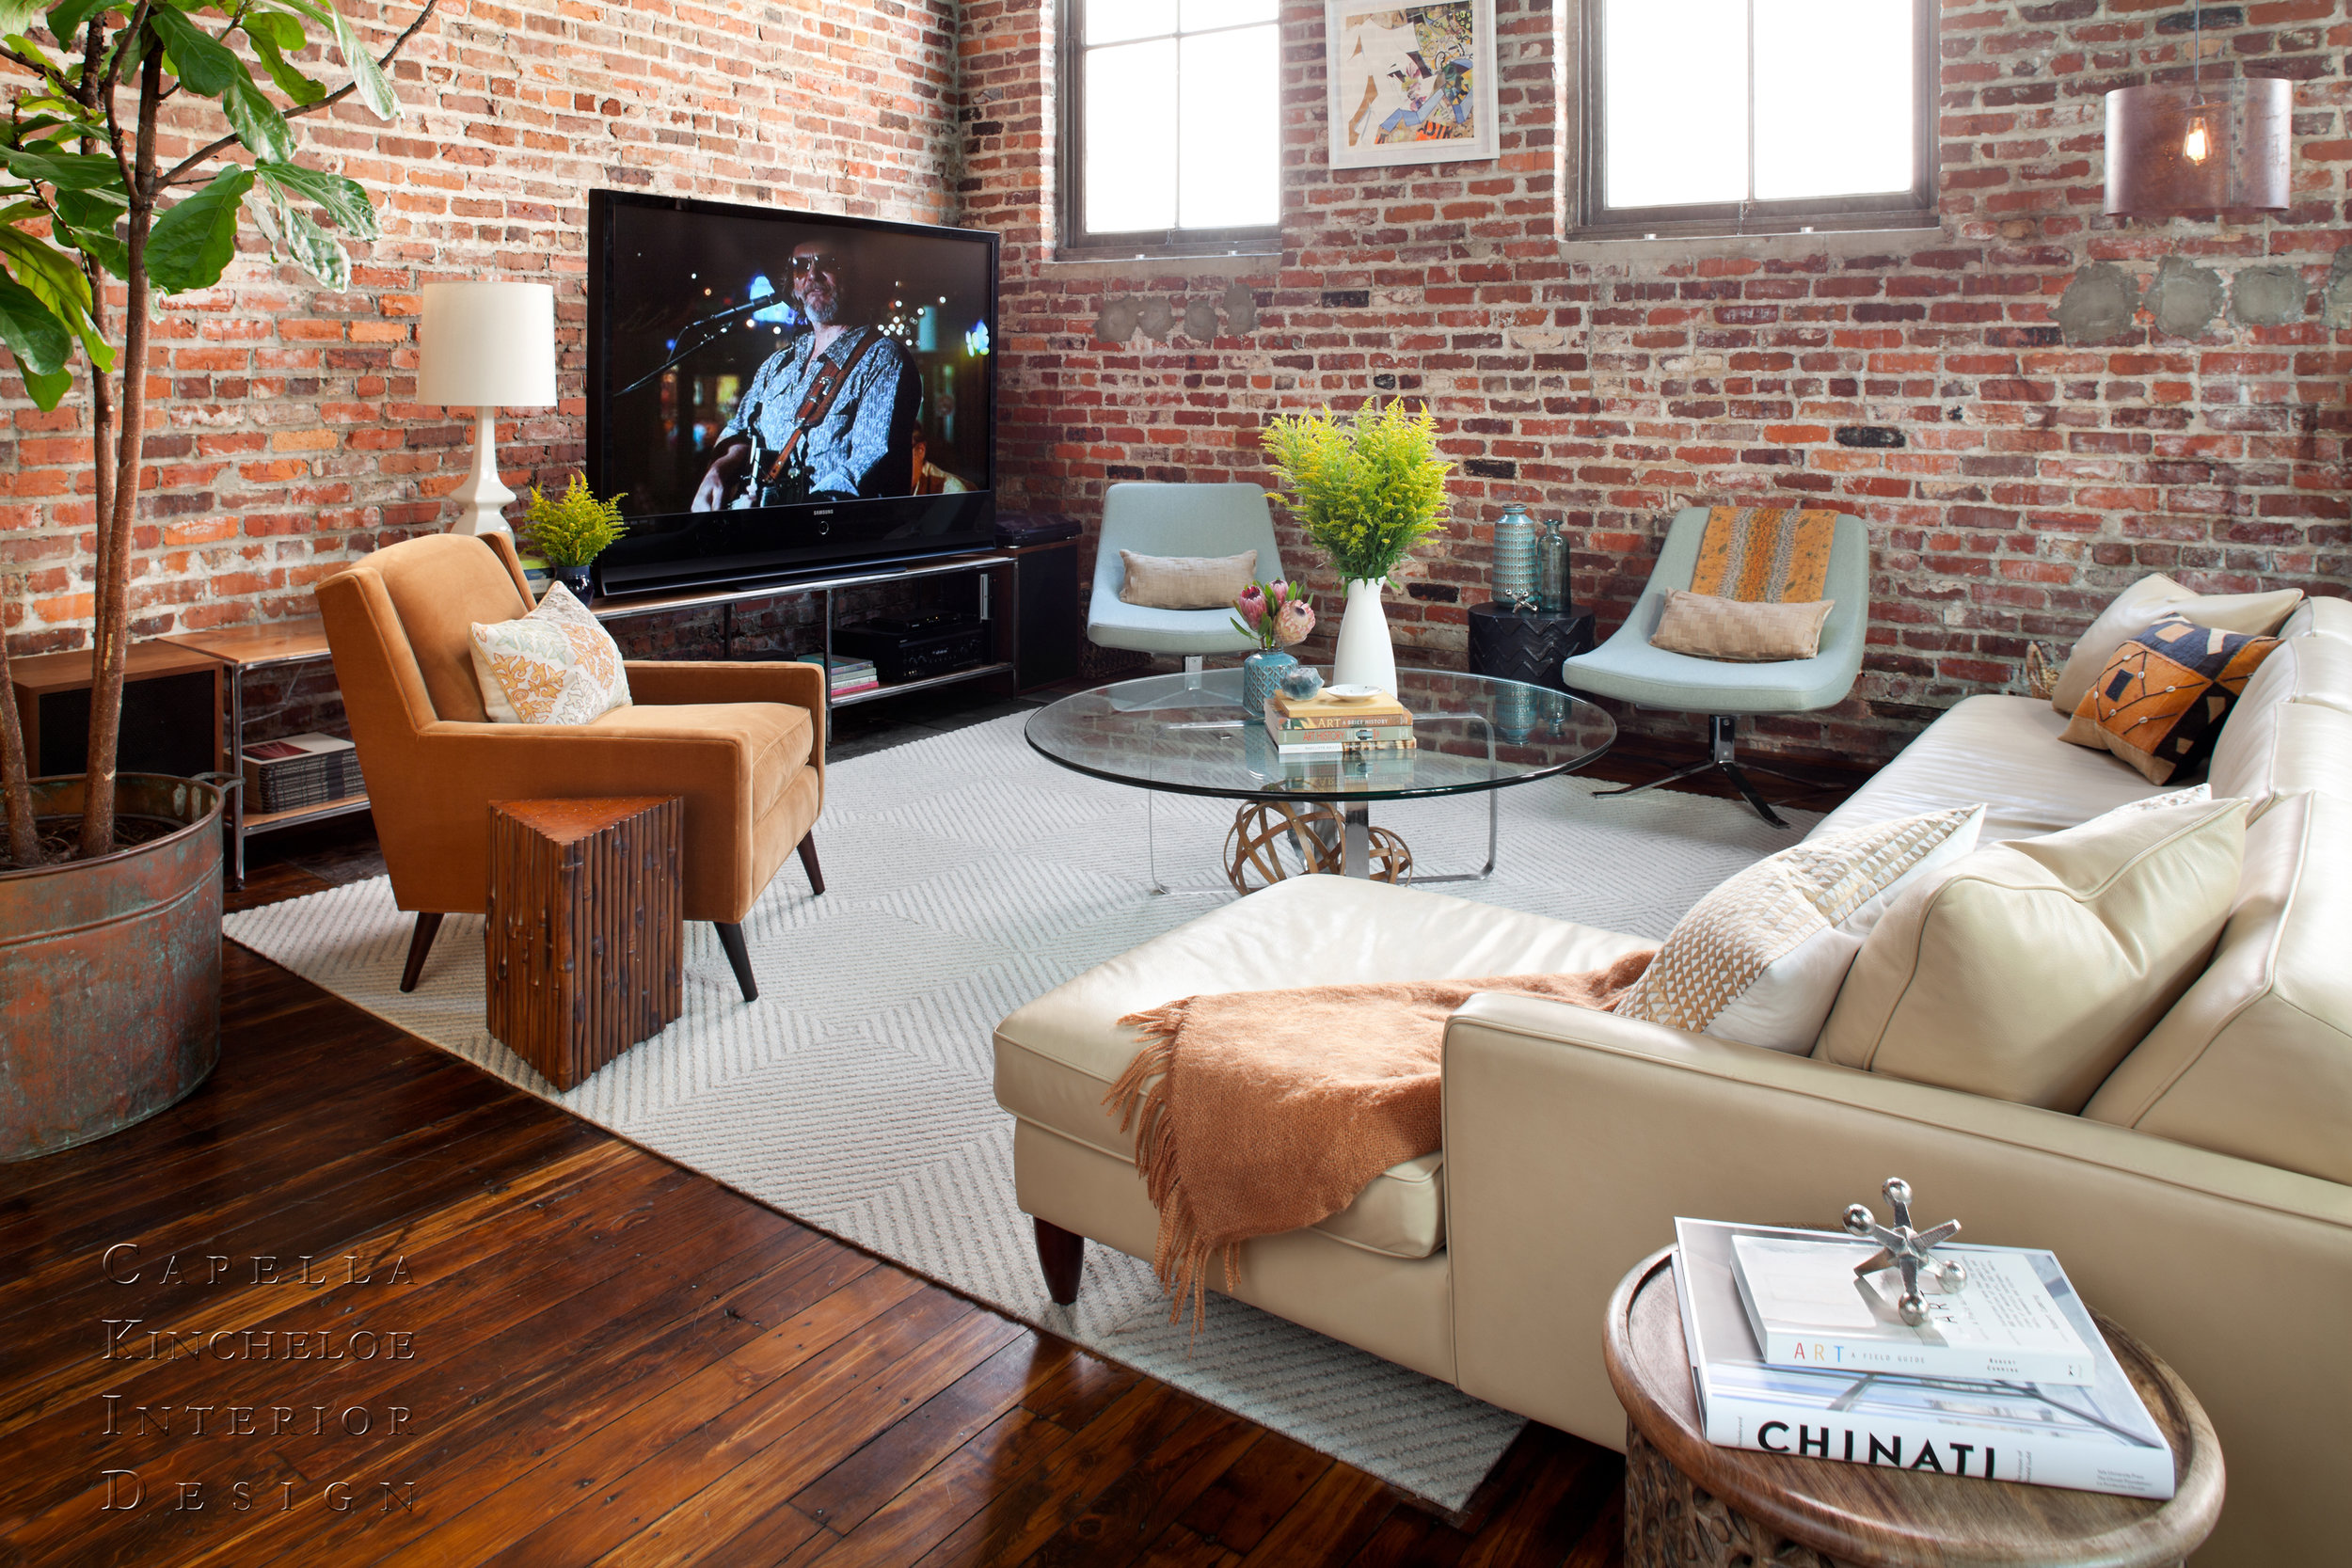 warehouse living in Atlanta, brick walls, American Leather sofa, Room & Board Chairs, fiddle leaf fig tree open concept living